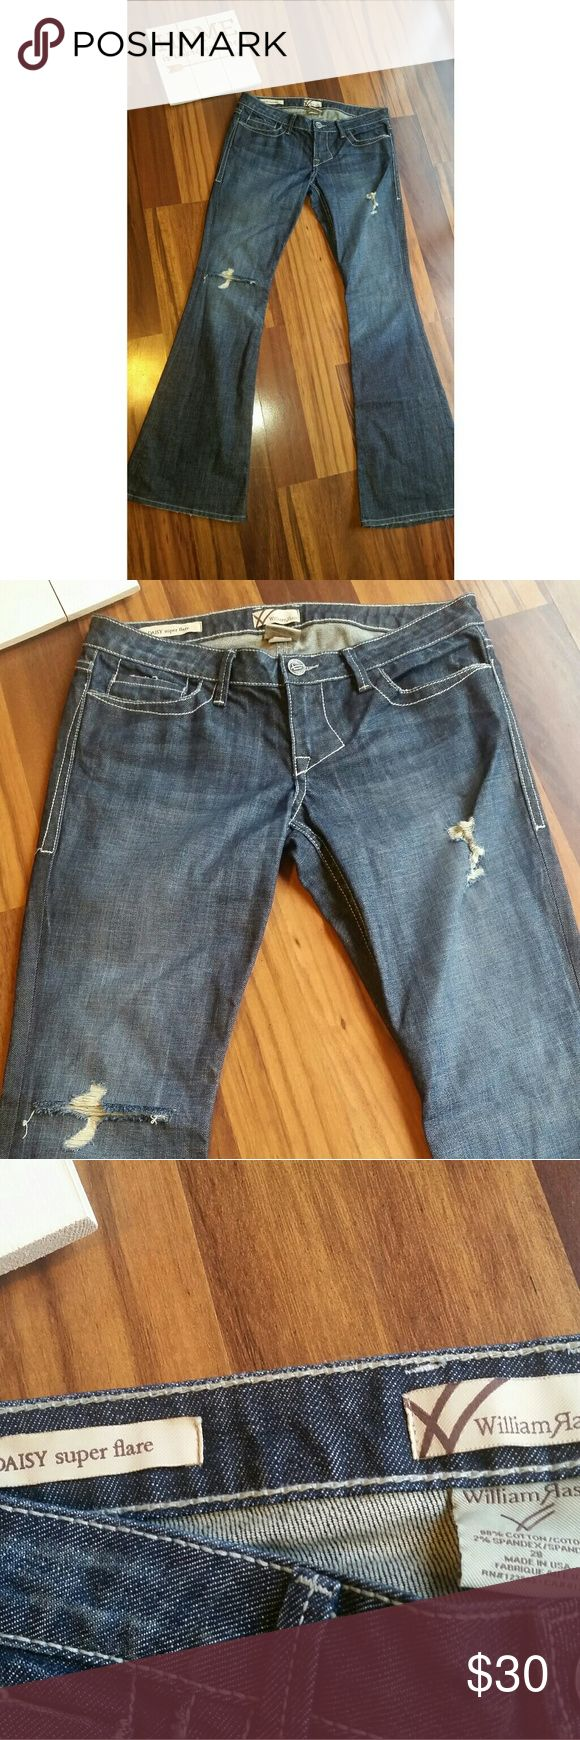 William Rast Super Flare Jeans Sz 29 Distressed William Rast Jeans size 29 *Daisy Super Flare Low Rise  *Distressed, destroyed look *Dark Denim *Waist: 17   inches (lying flat aligned edge to edge) *Front Rise: 8  inches *Inseam: 35 inches  There is distressing by manufacturer and even wear and tear on some of the pockets and the bottom hem (as shown in pic). This could be manufacturer design. William Rast Jeans Flare & Wide Leg